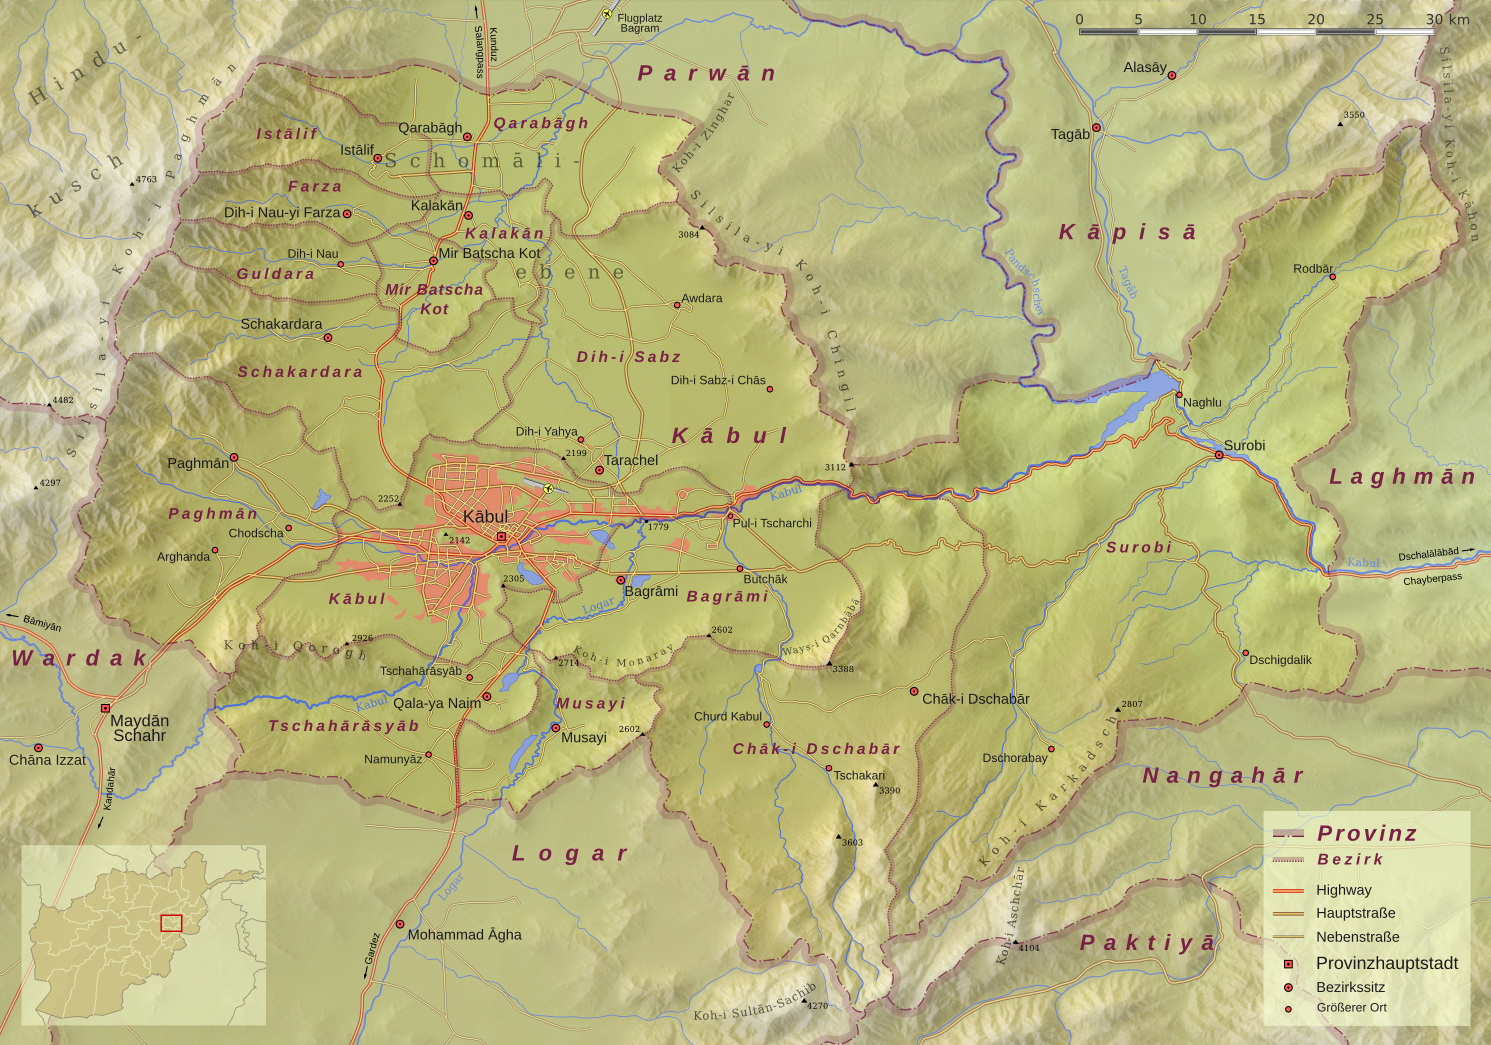 File:Kabul province topographic map.png   Wikimedia Commons